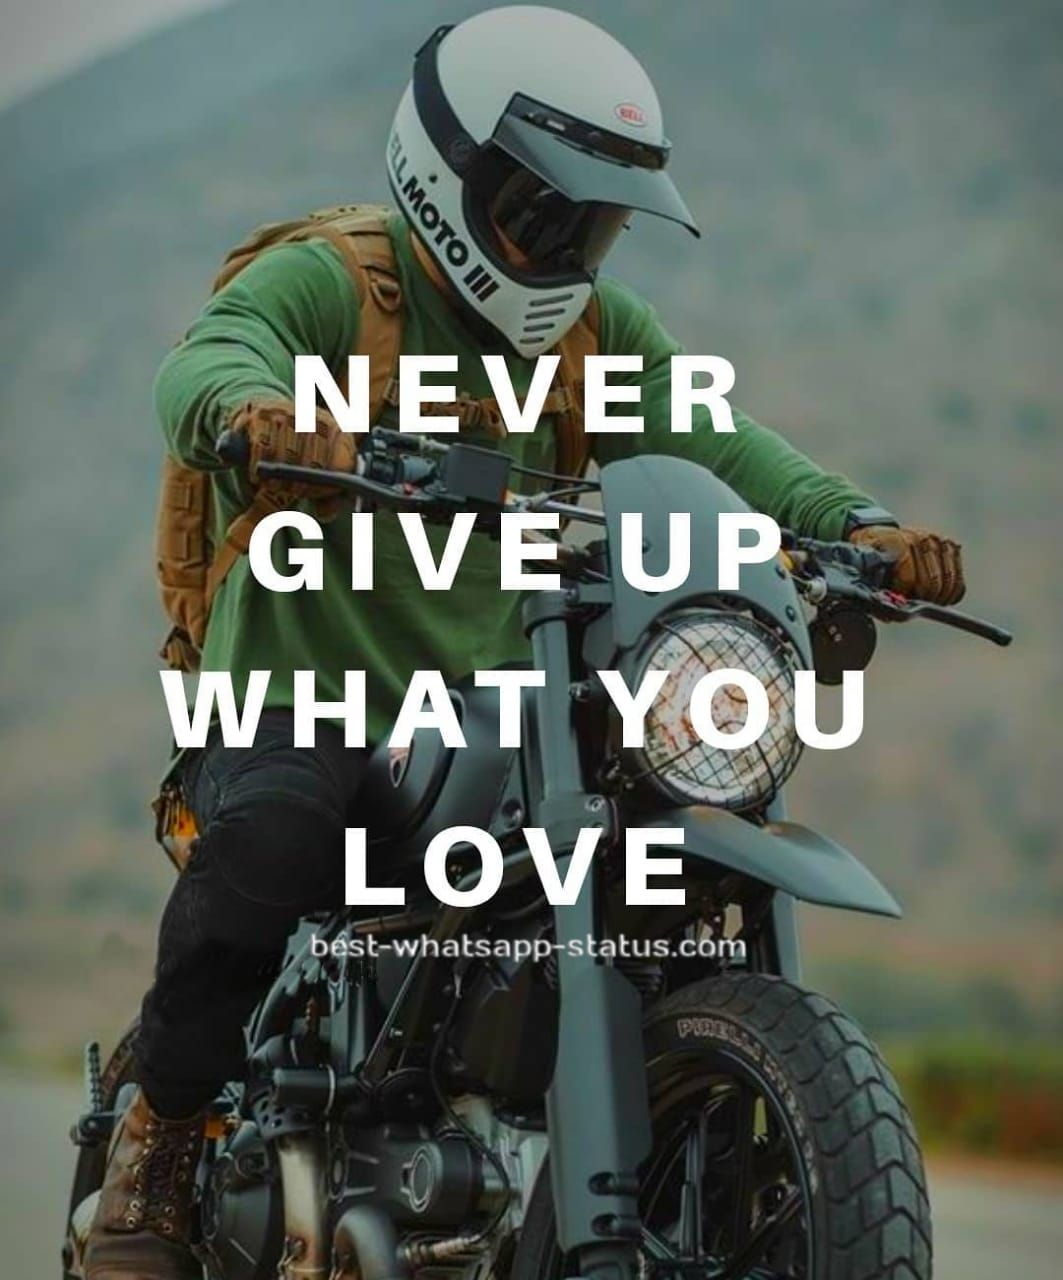 Pin On Bike Quotes